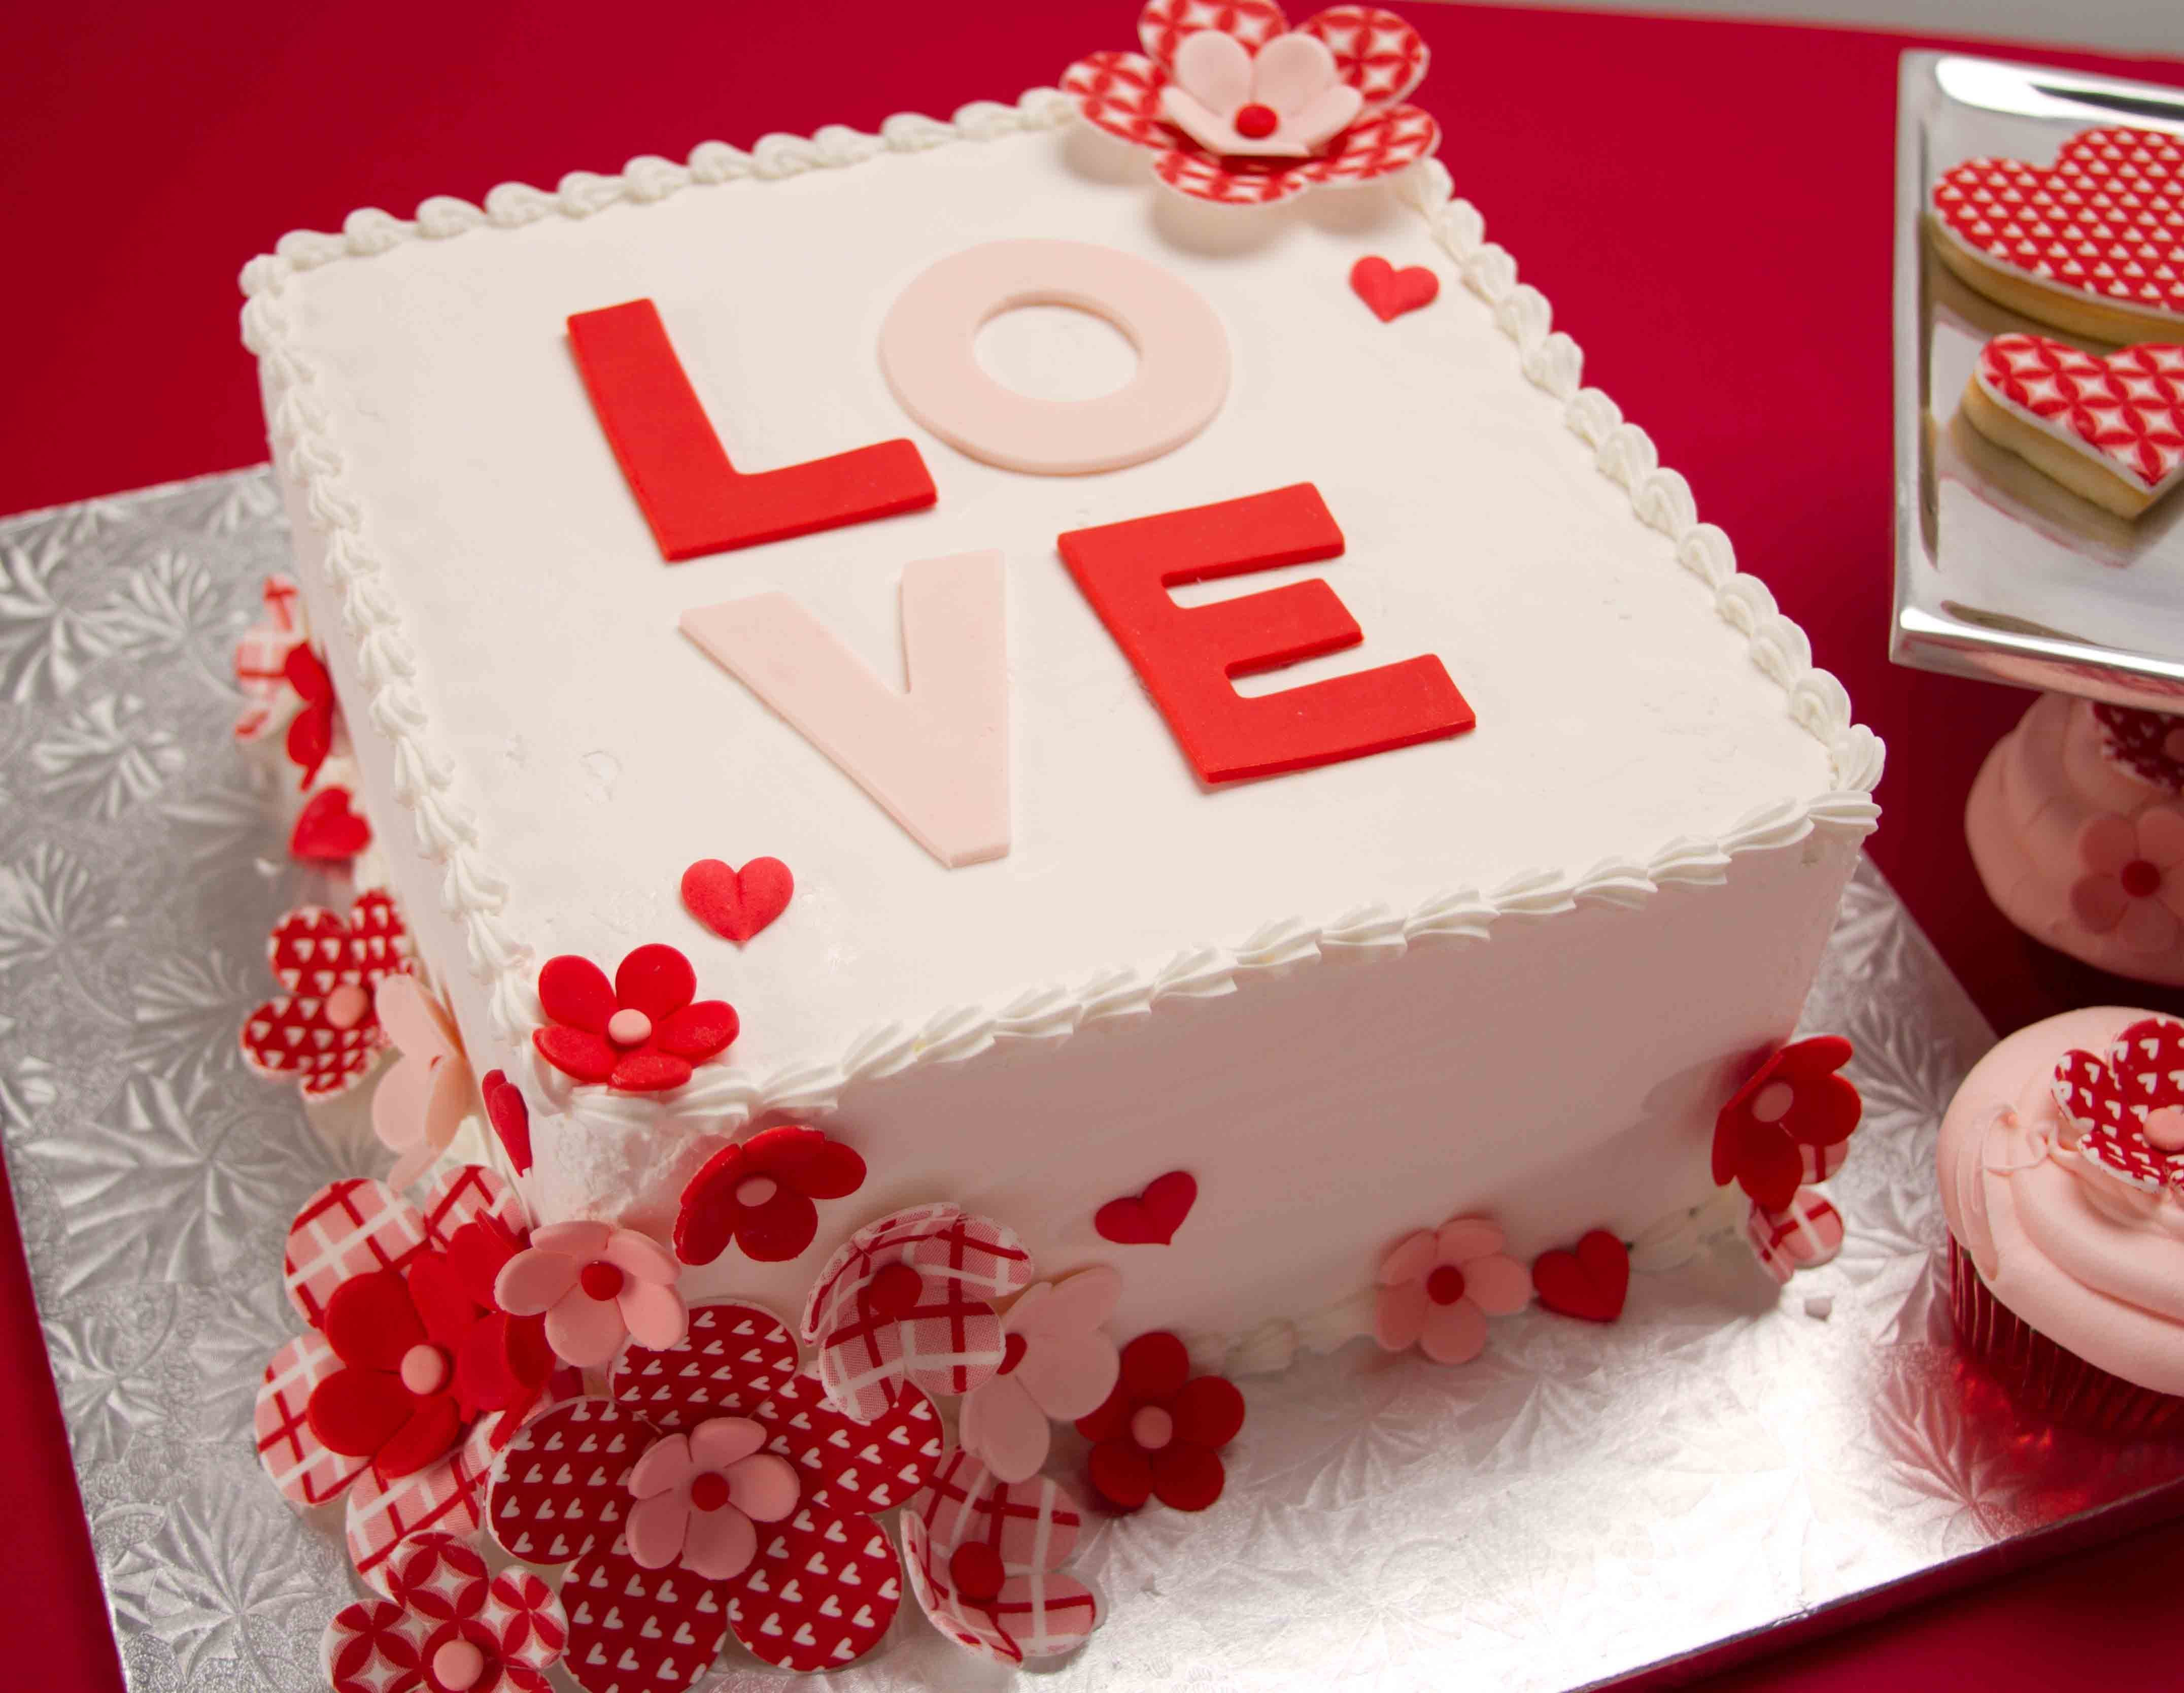 Best ideas about Birthday Cake For Husband . Save or Pin Beautiful Birthday Cake For Husband Wife Valentine s Day Now.